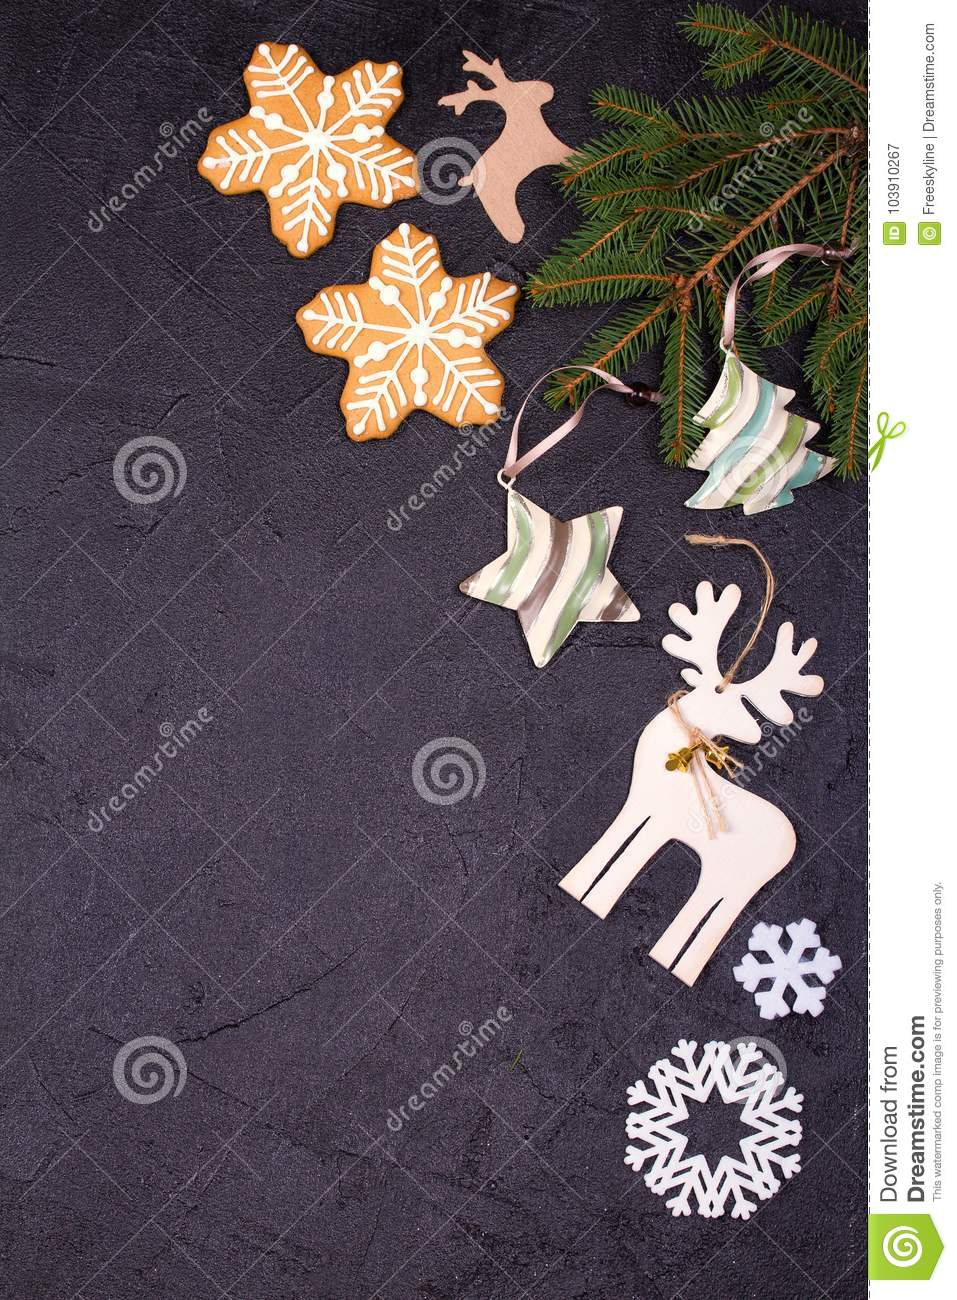 christmas and new year border or frame on black background winter holidays concept view from above top studio shot vertical